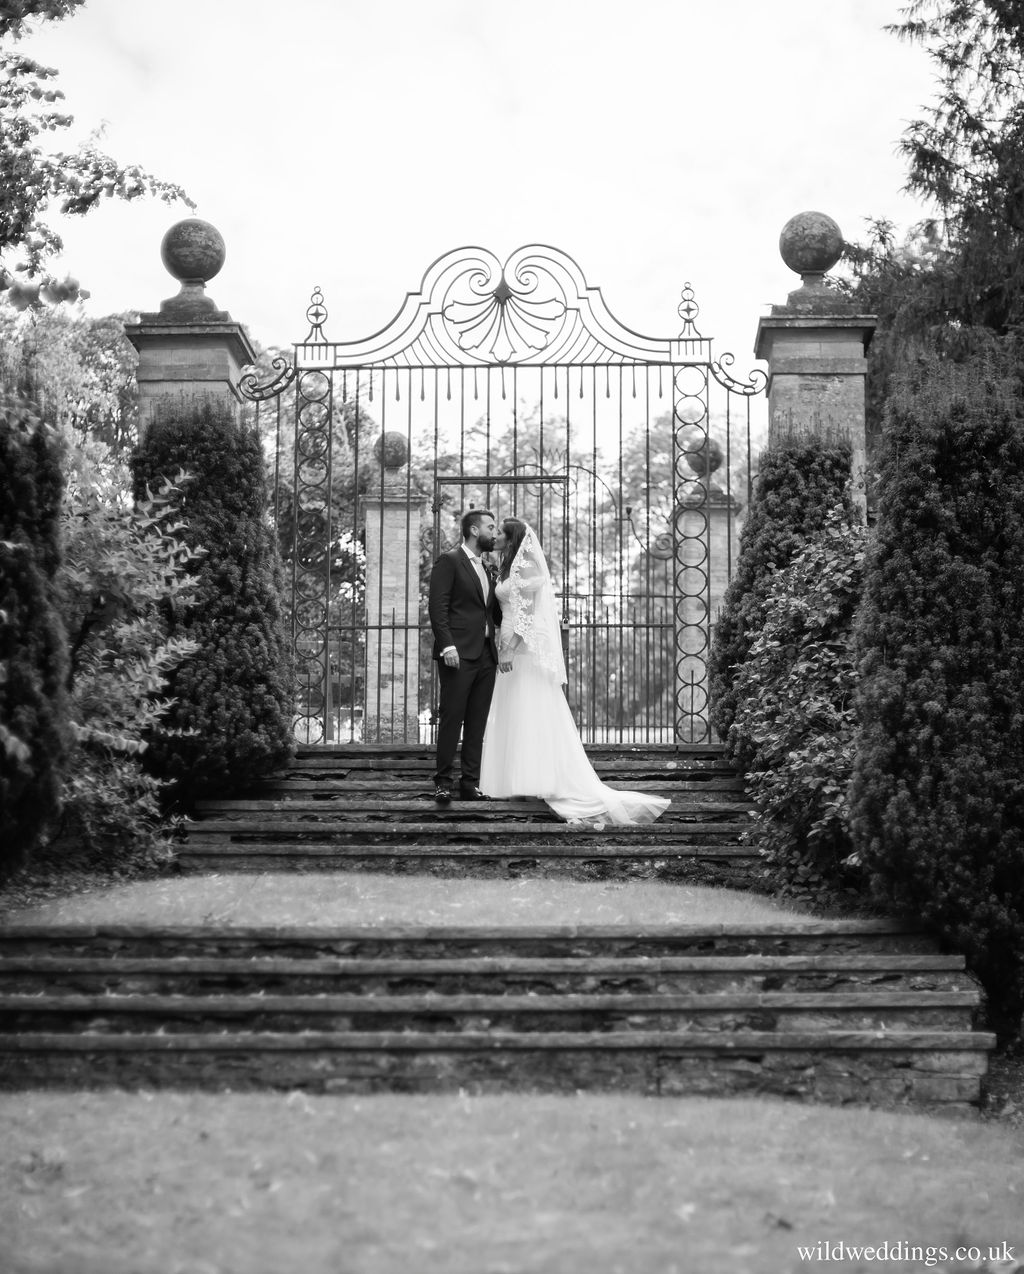 Wedding at Cornwell Manor, Oxfordshire